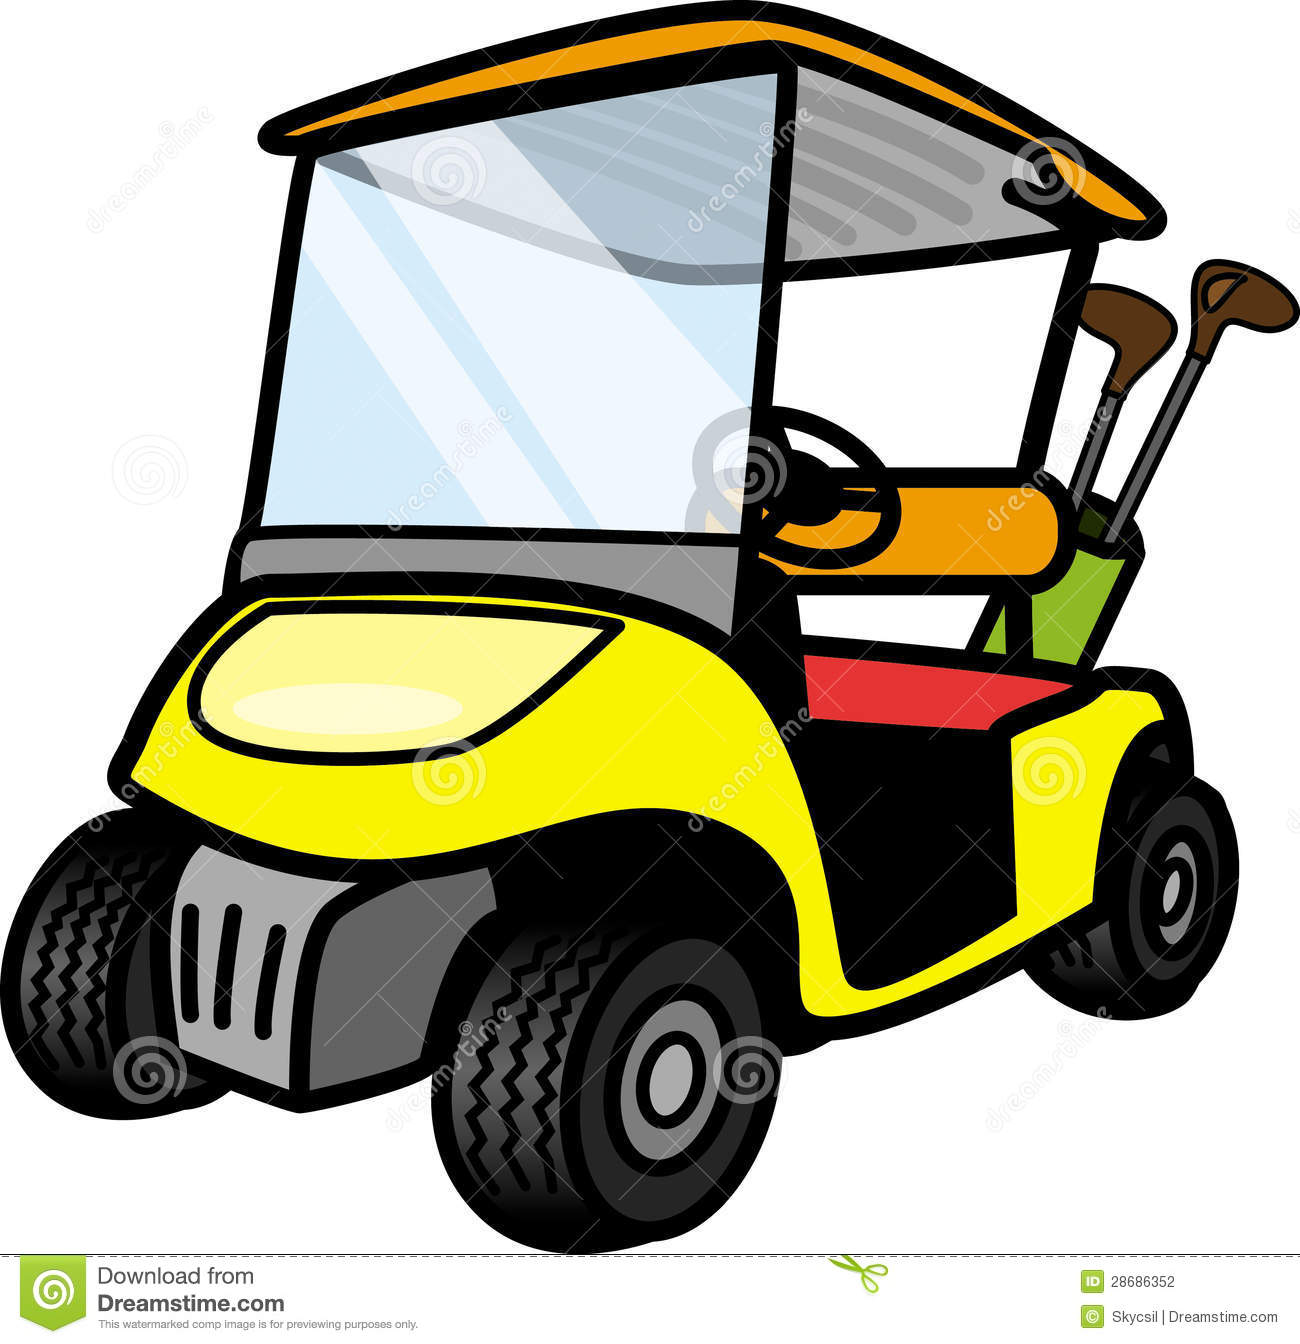 Cartoon Golf Cart Clipart #1-Cartoon Golf Cart Clipart #1-8